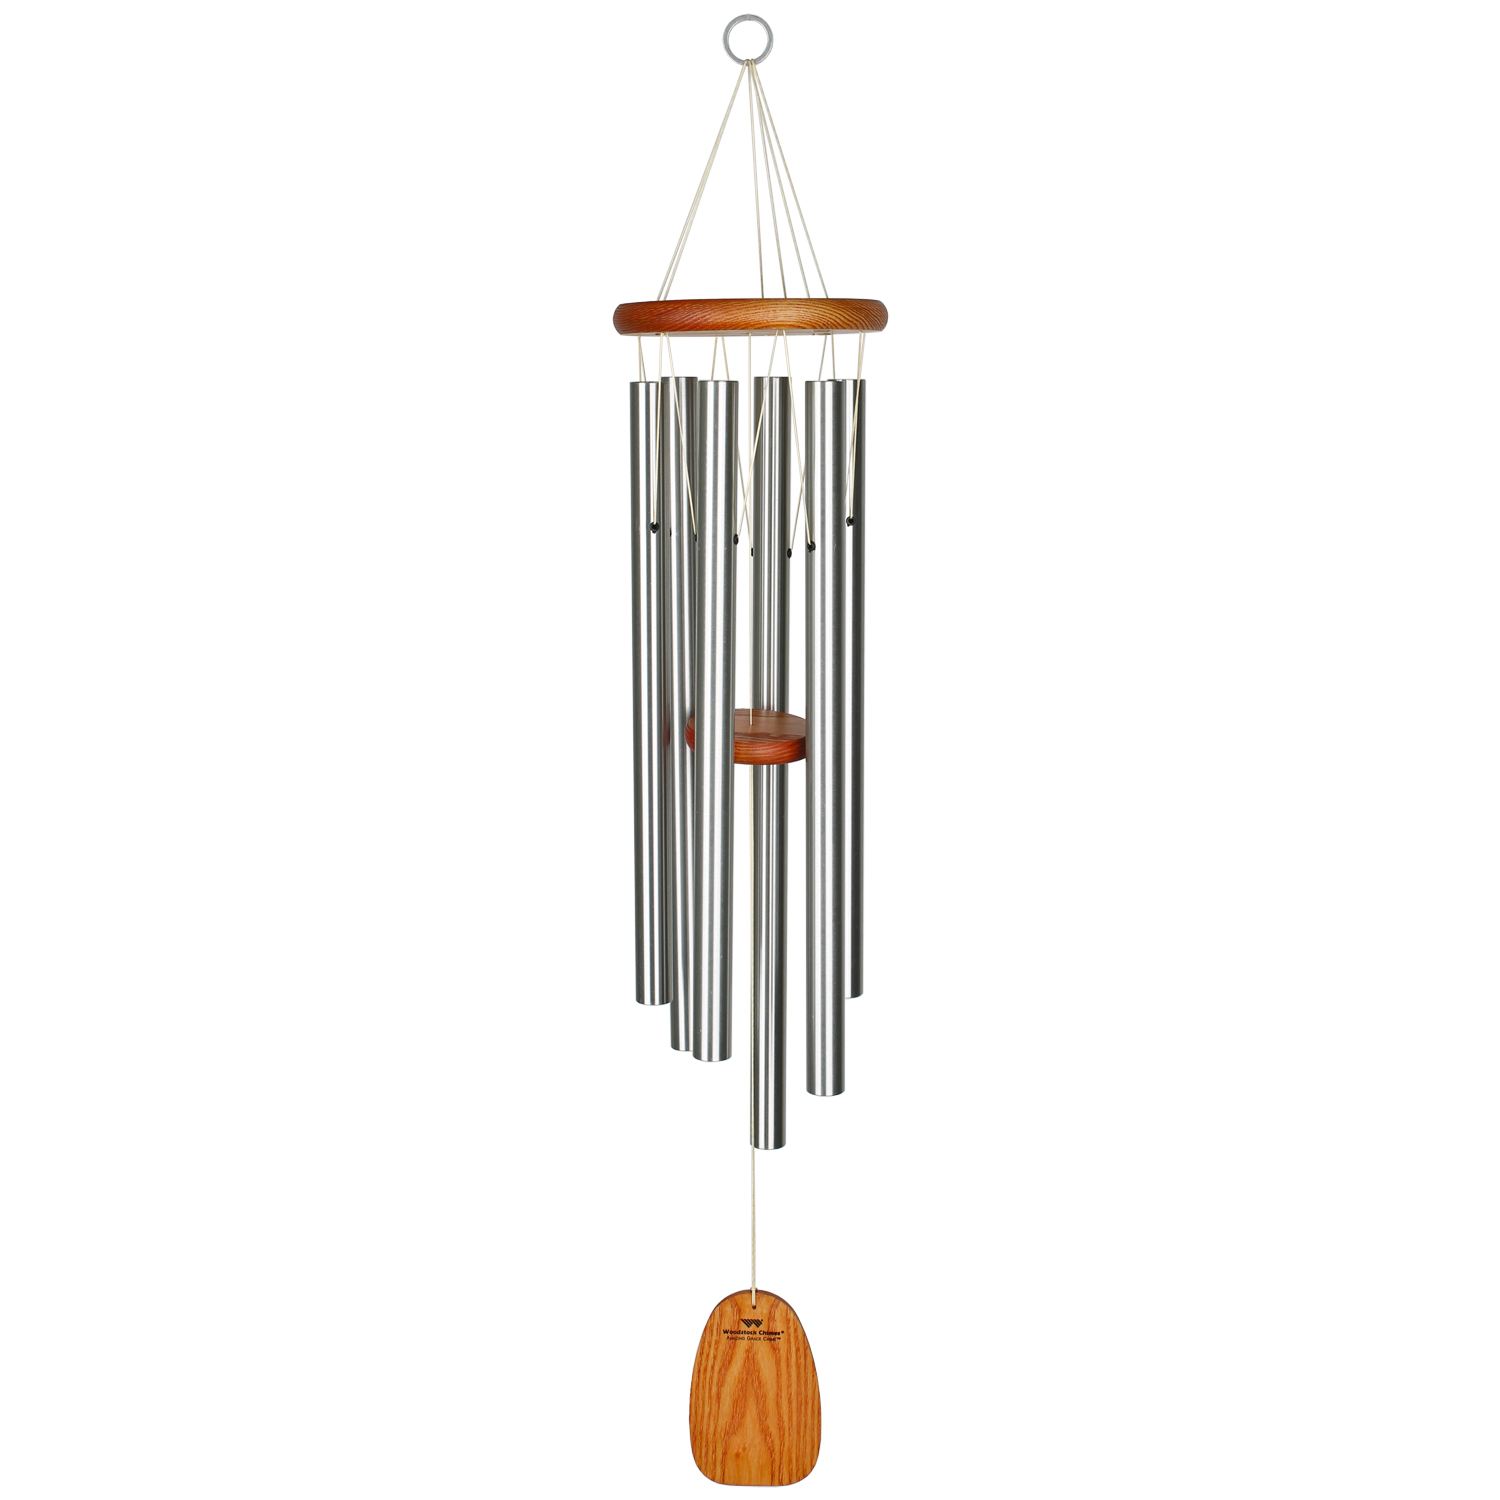 woodstock encore collection windspiel chimes of mercury silber mwd. Black Bedroom Furniture Sets. Home Design Ideas